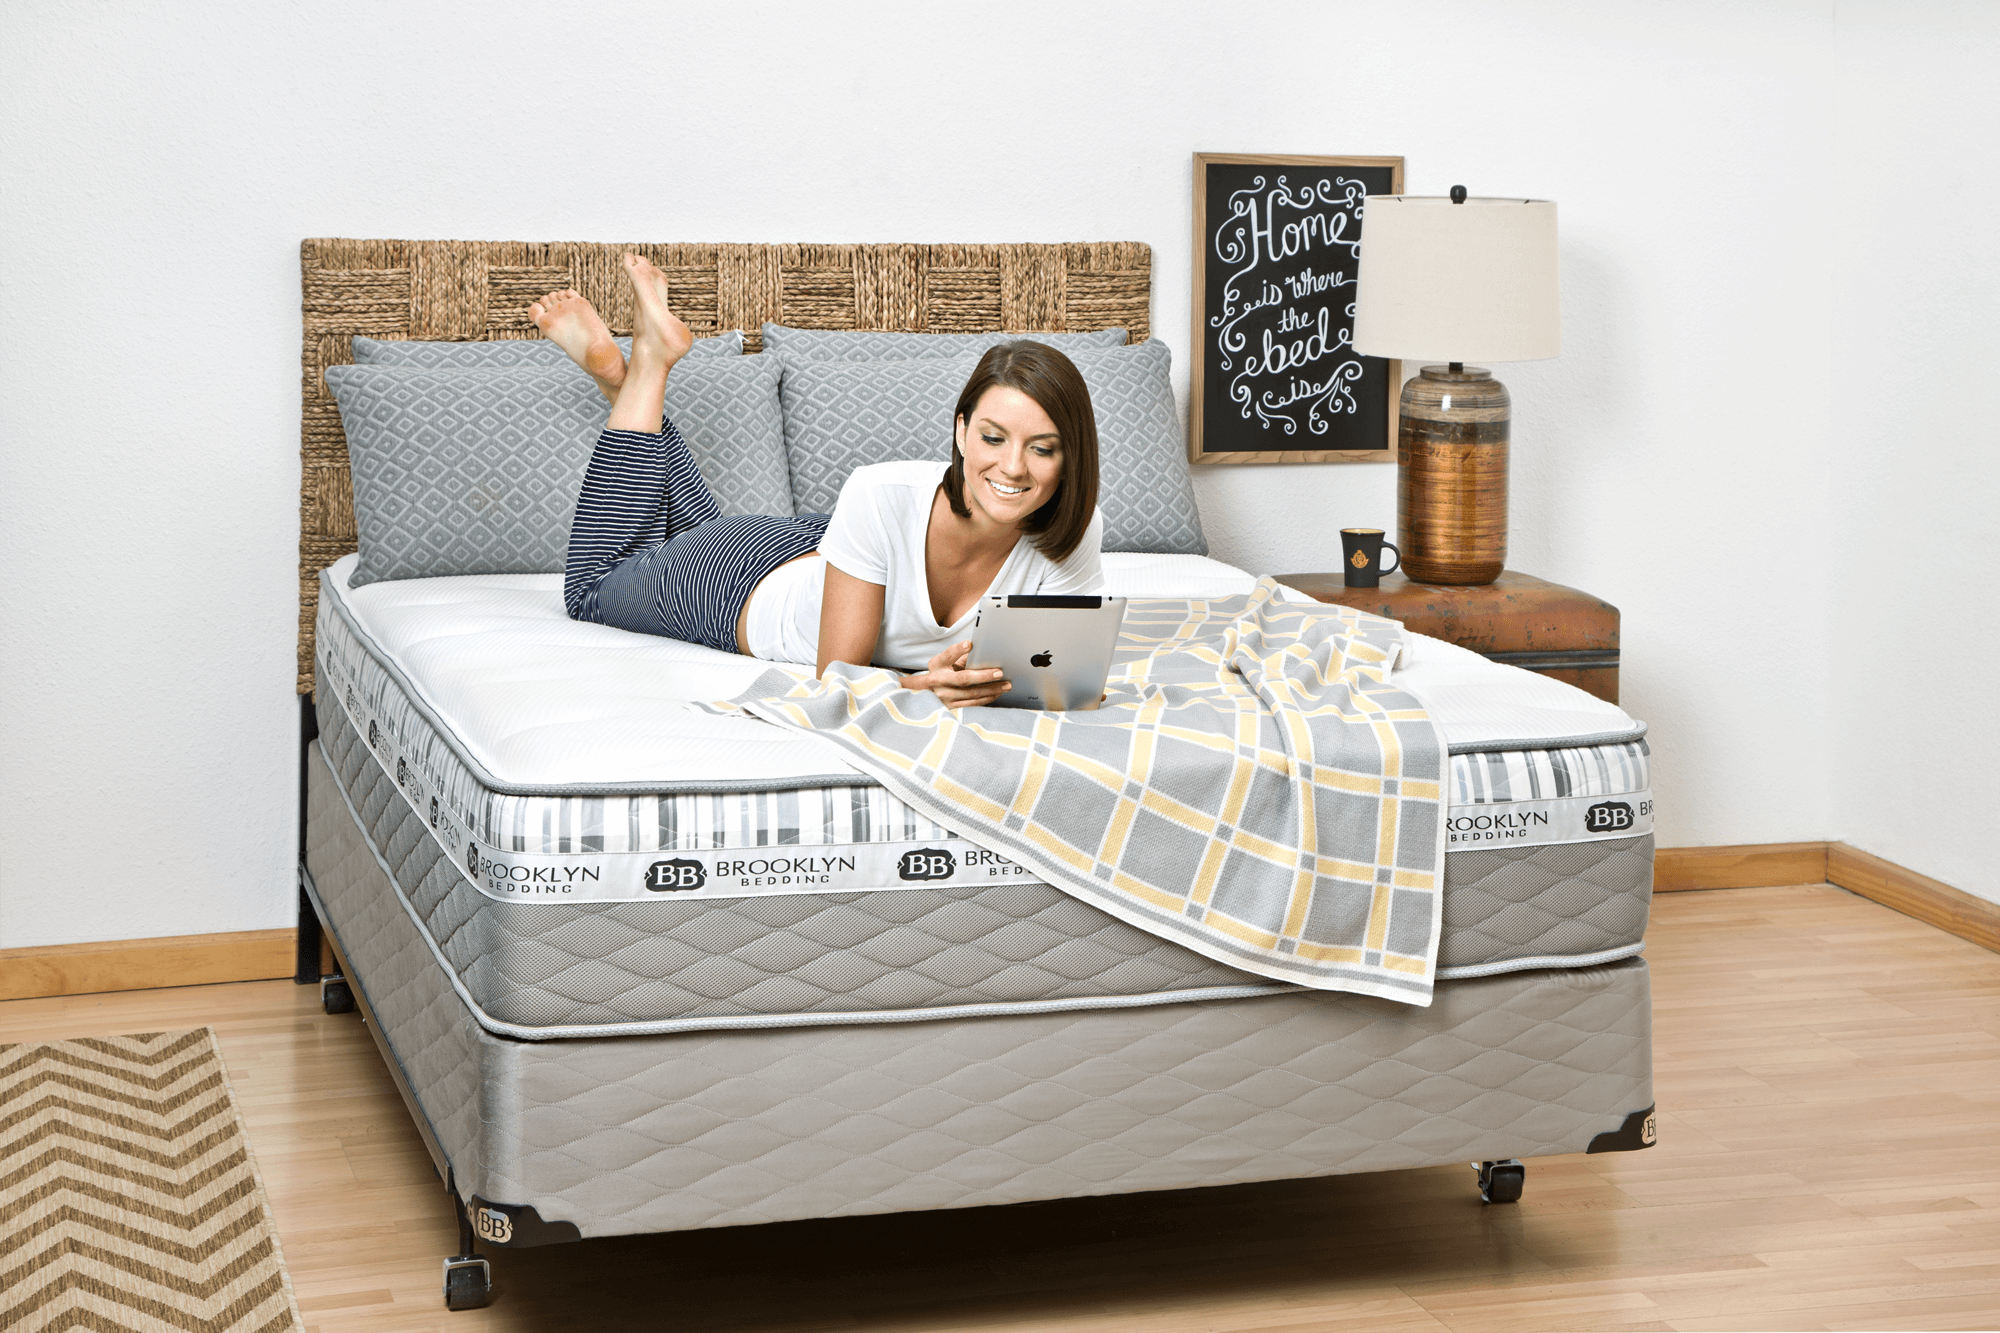 Brooklyn bed mattress review get best mattress for Brooklyn bedding vs tuft and needle